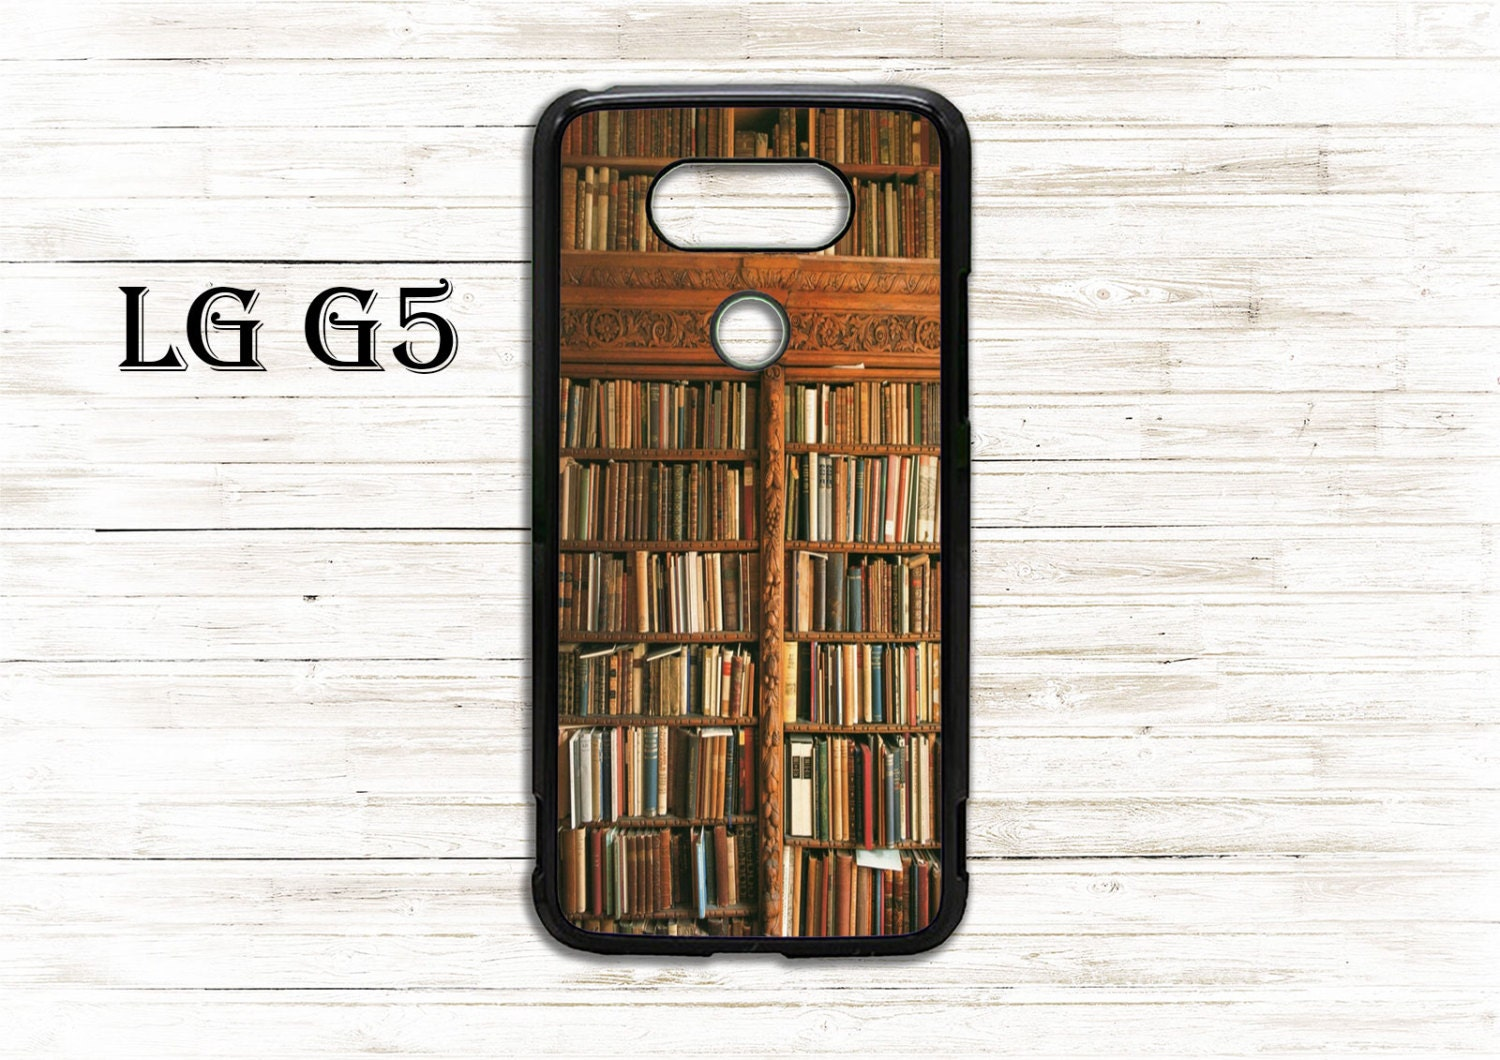 official photos f921f 20396 Vintage bookshelf - phone cover - case for LG G3/G4/G5/G6 phone - Beautiful  gift idea, cool cover, nice case - case for book lovers